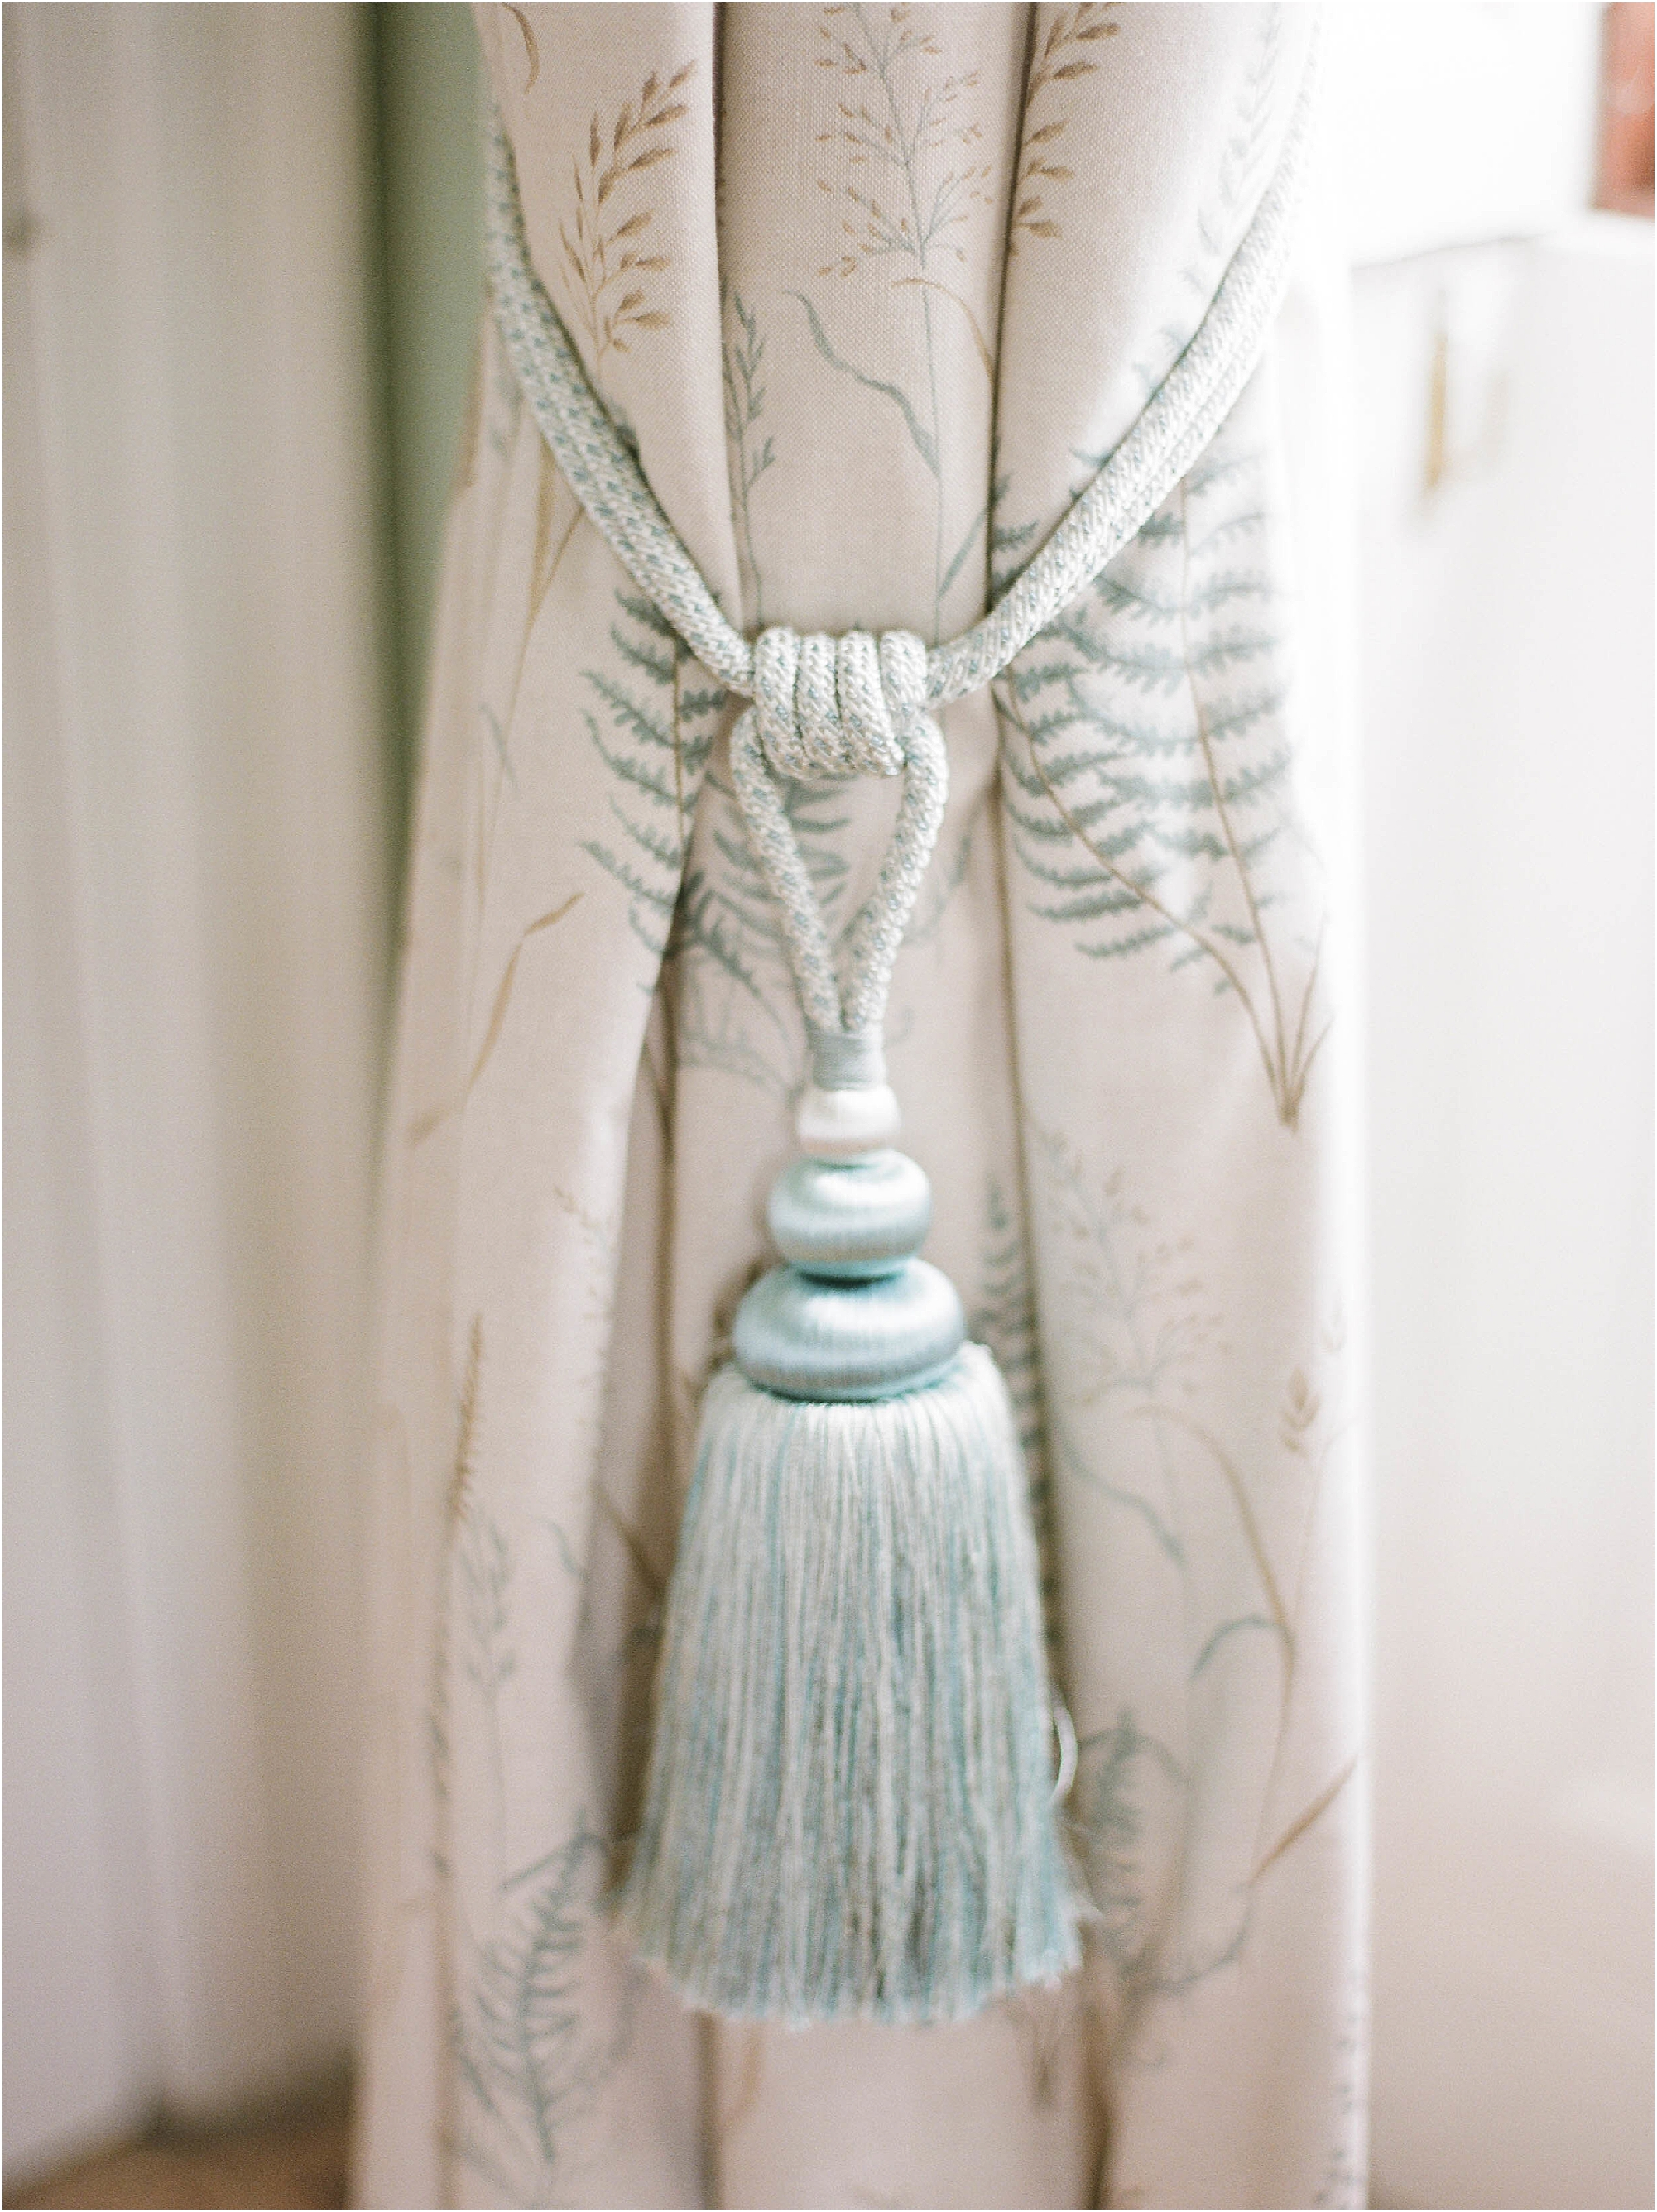 Silk tassel on curtain